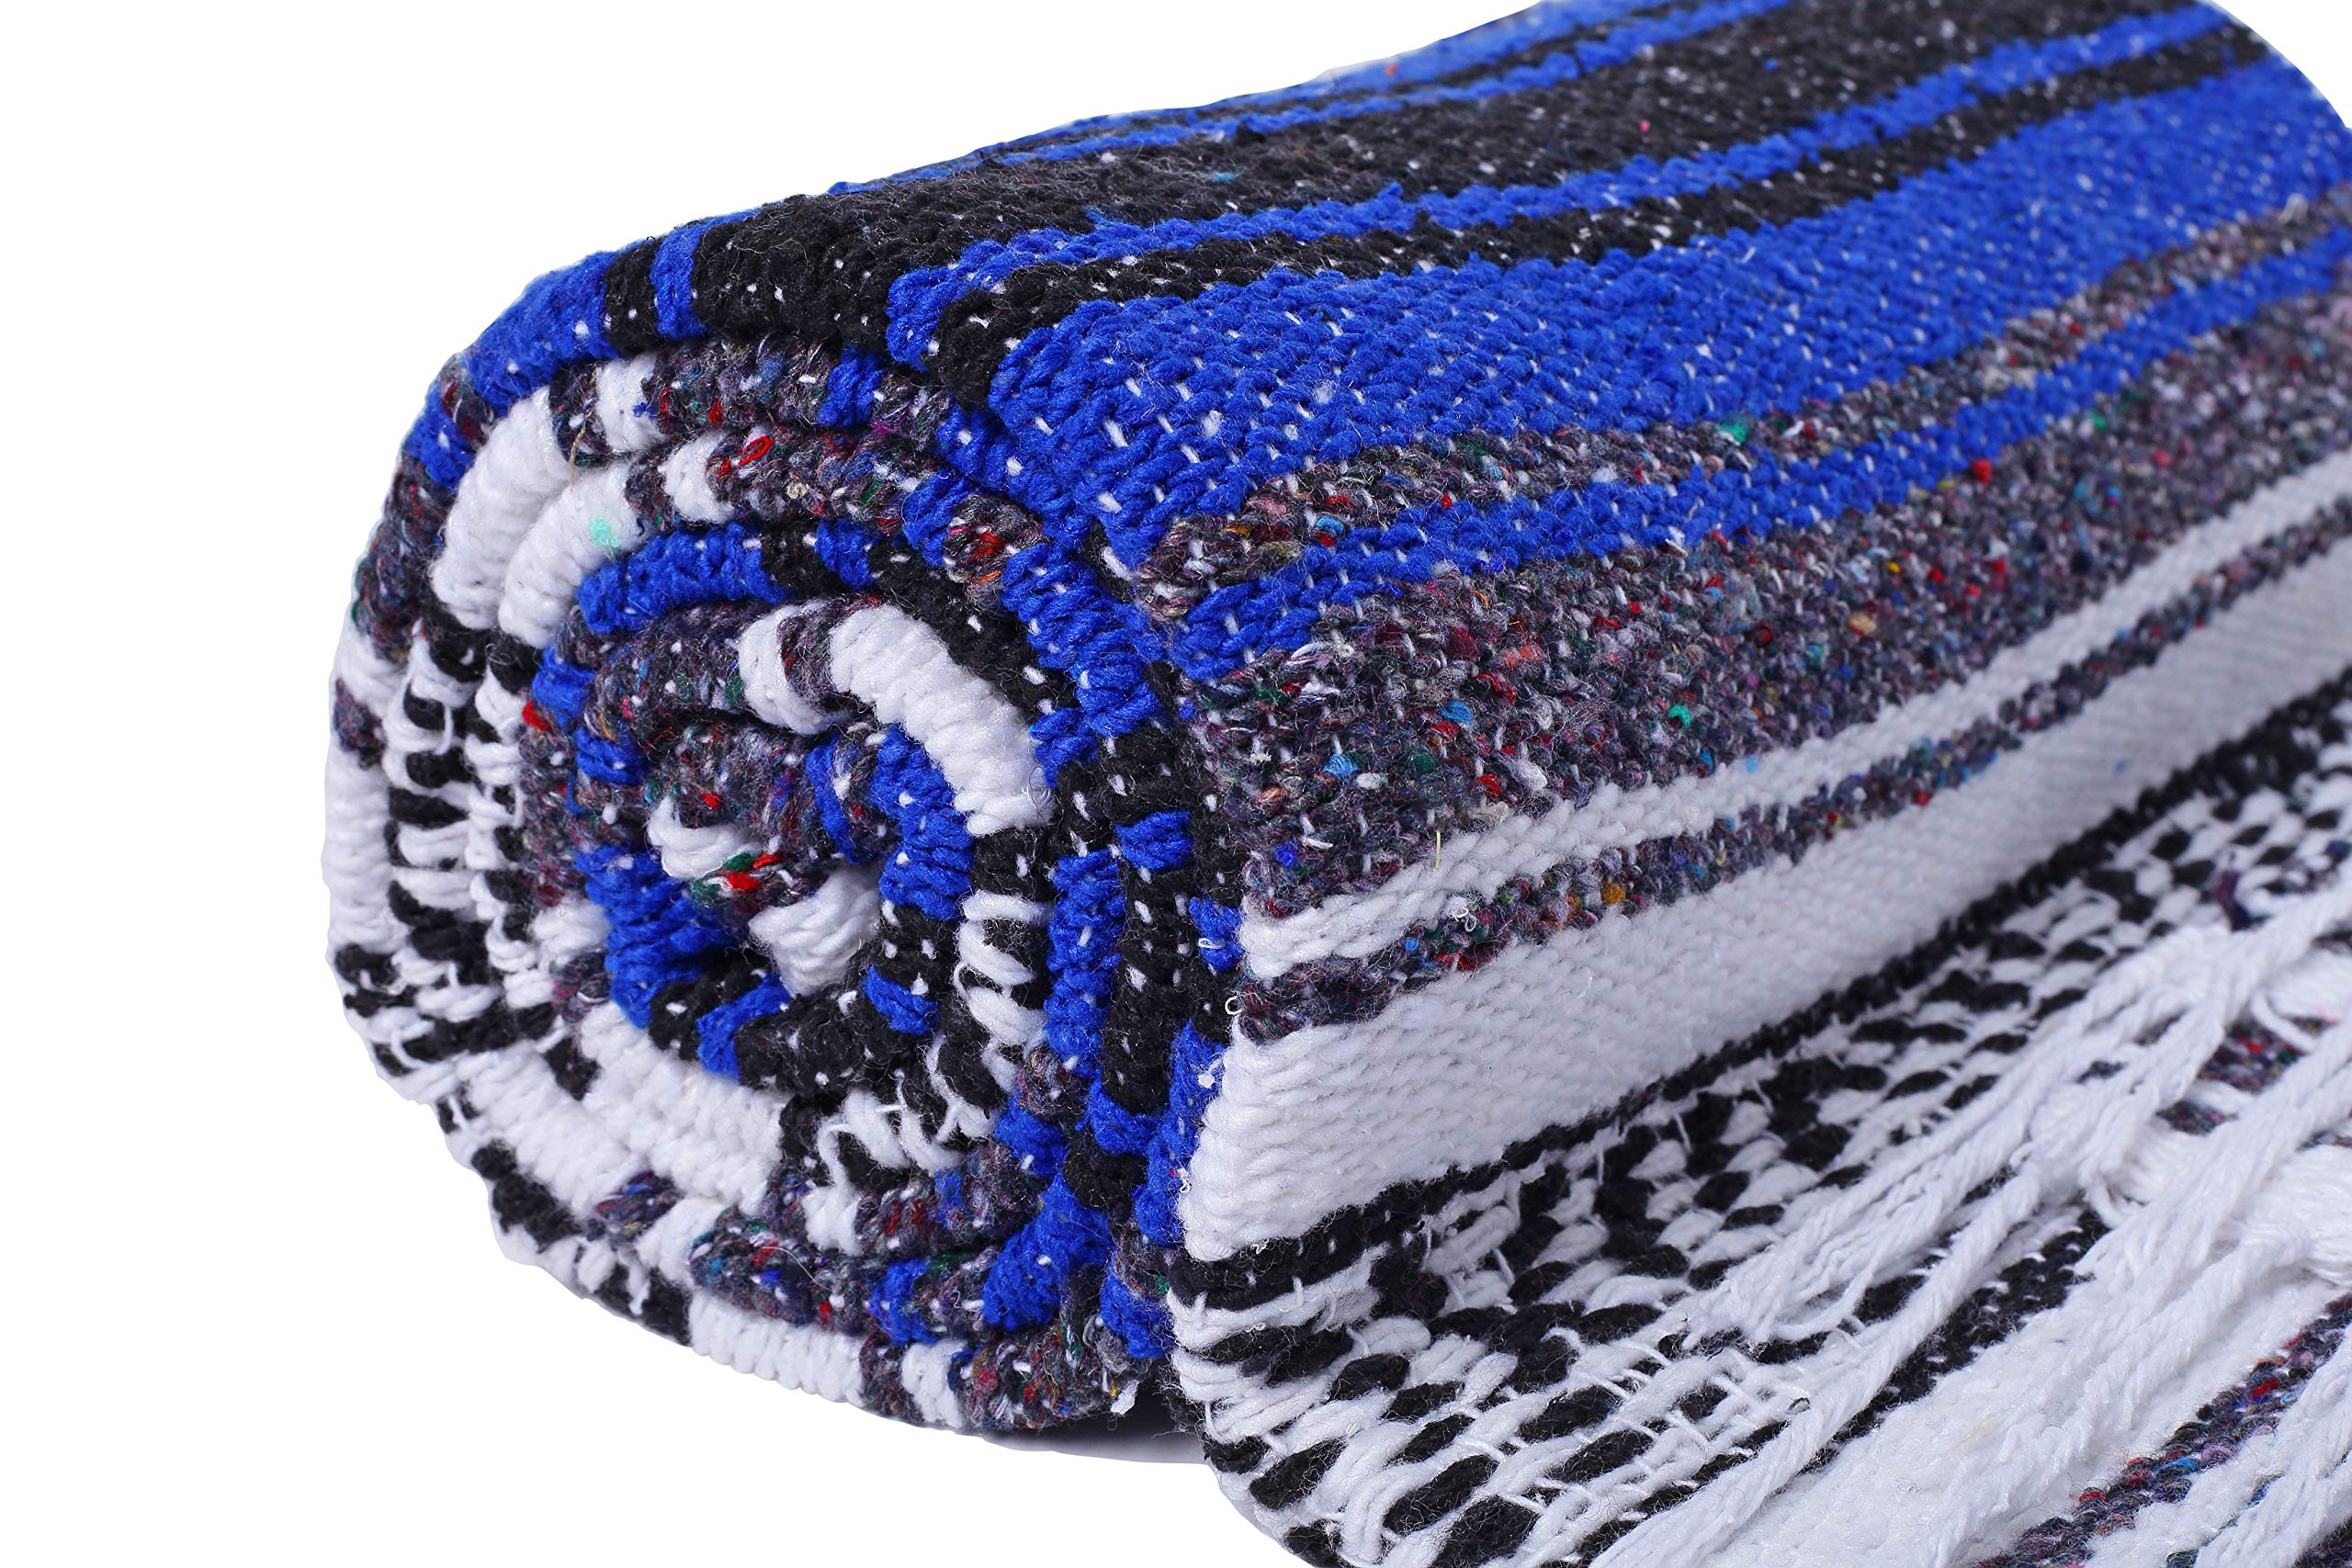 El Paso Designs Genuine Mexican Falsa Blanket - Yoga Studio Blanket, Colorful, Soft Woven Serape Imported from Mexico (Blue) by El Paso Designs (Image #6)